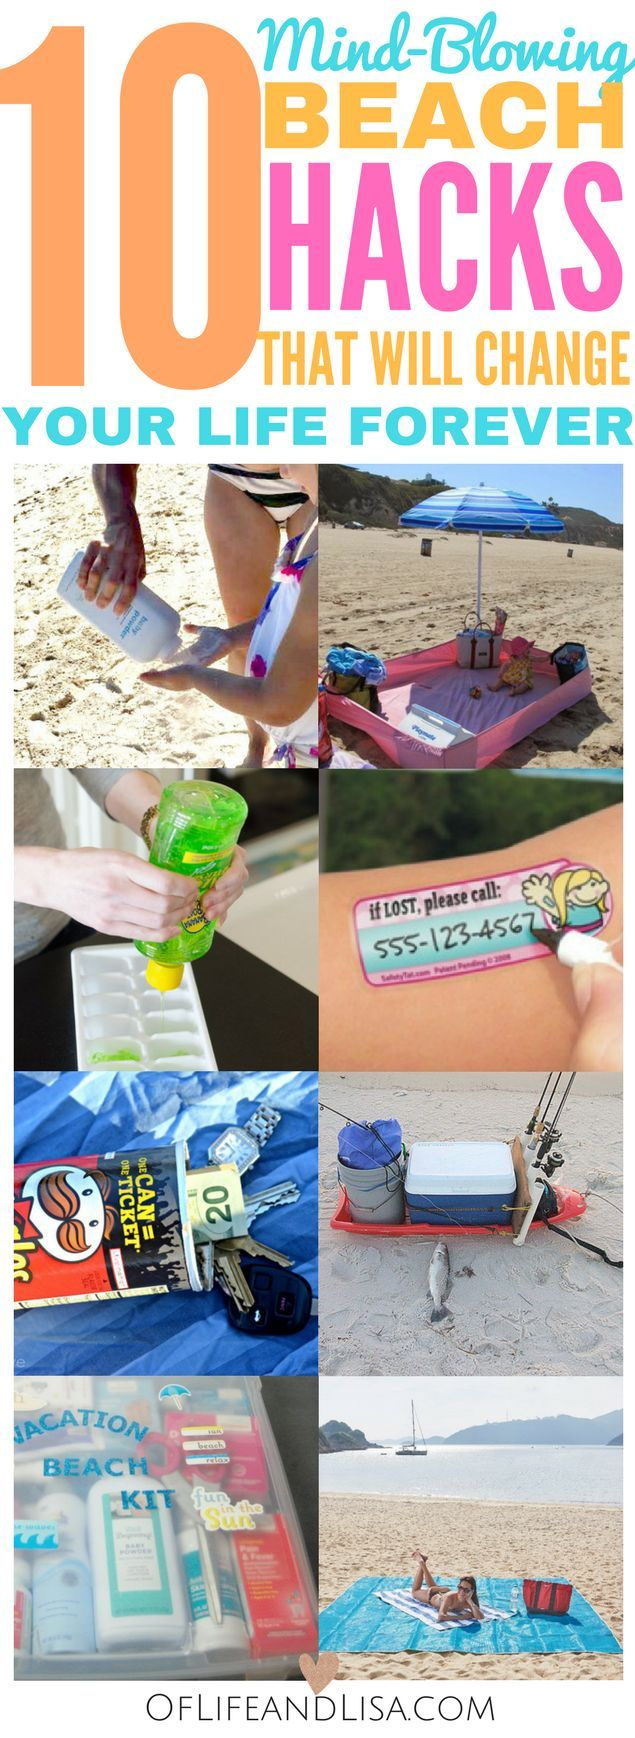 10 Mind Blowing Beach Hacks That Will Change Your Life Forever